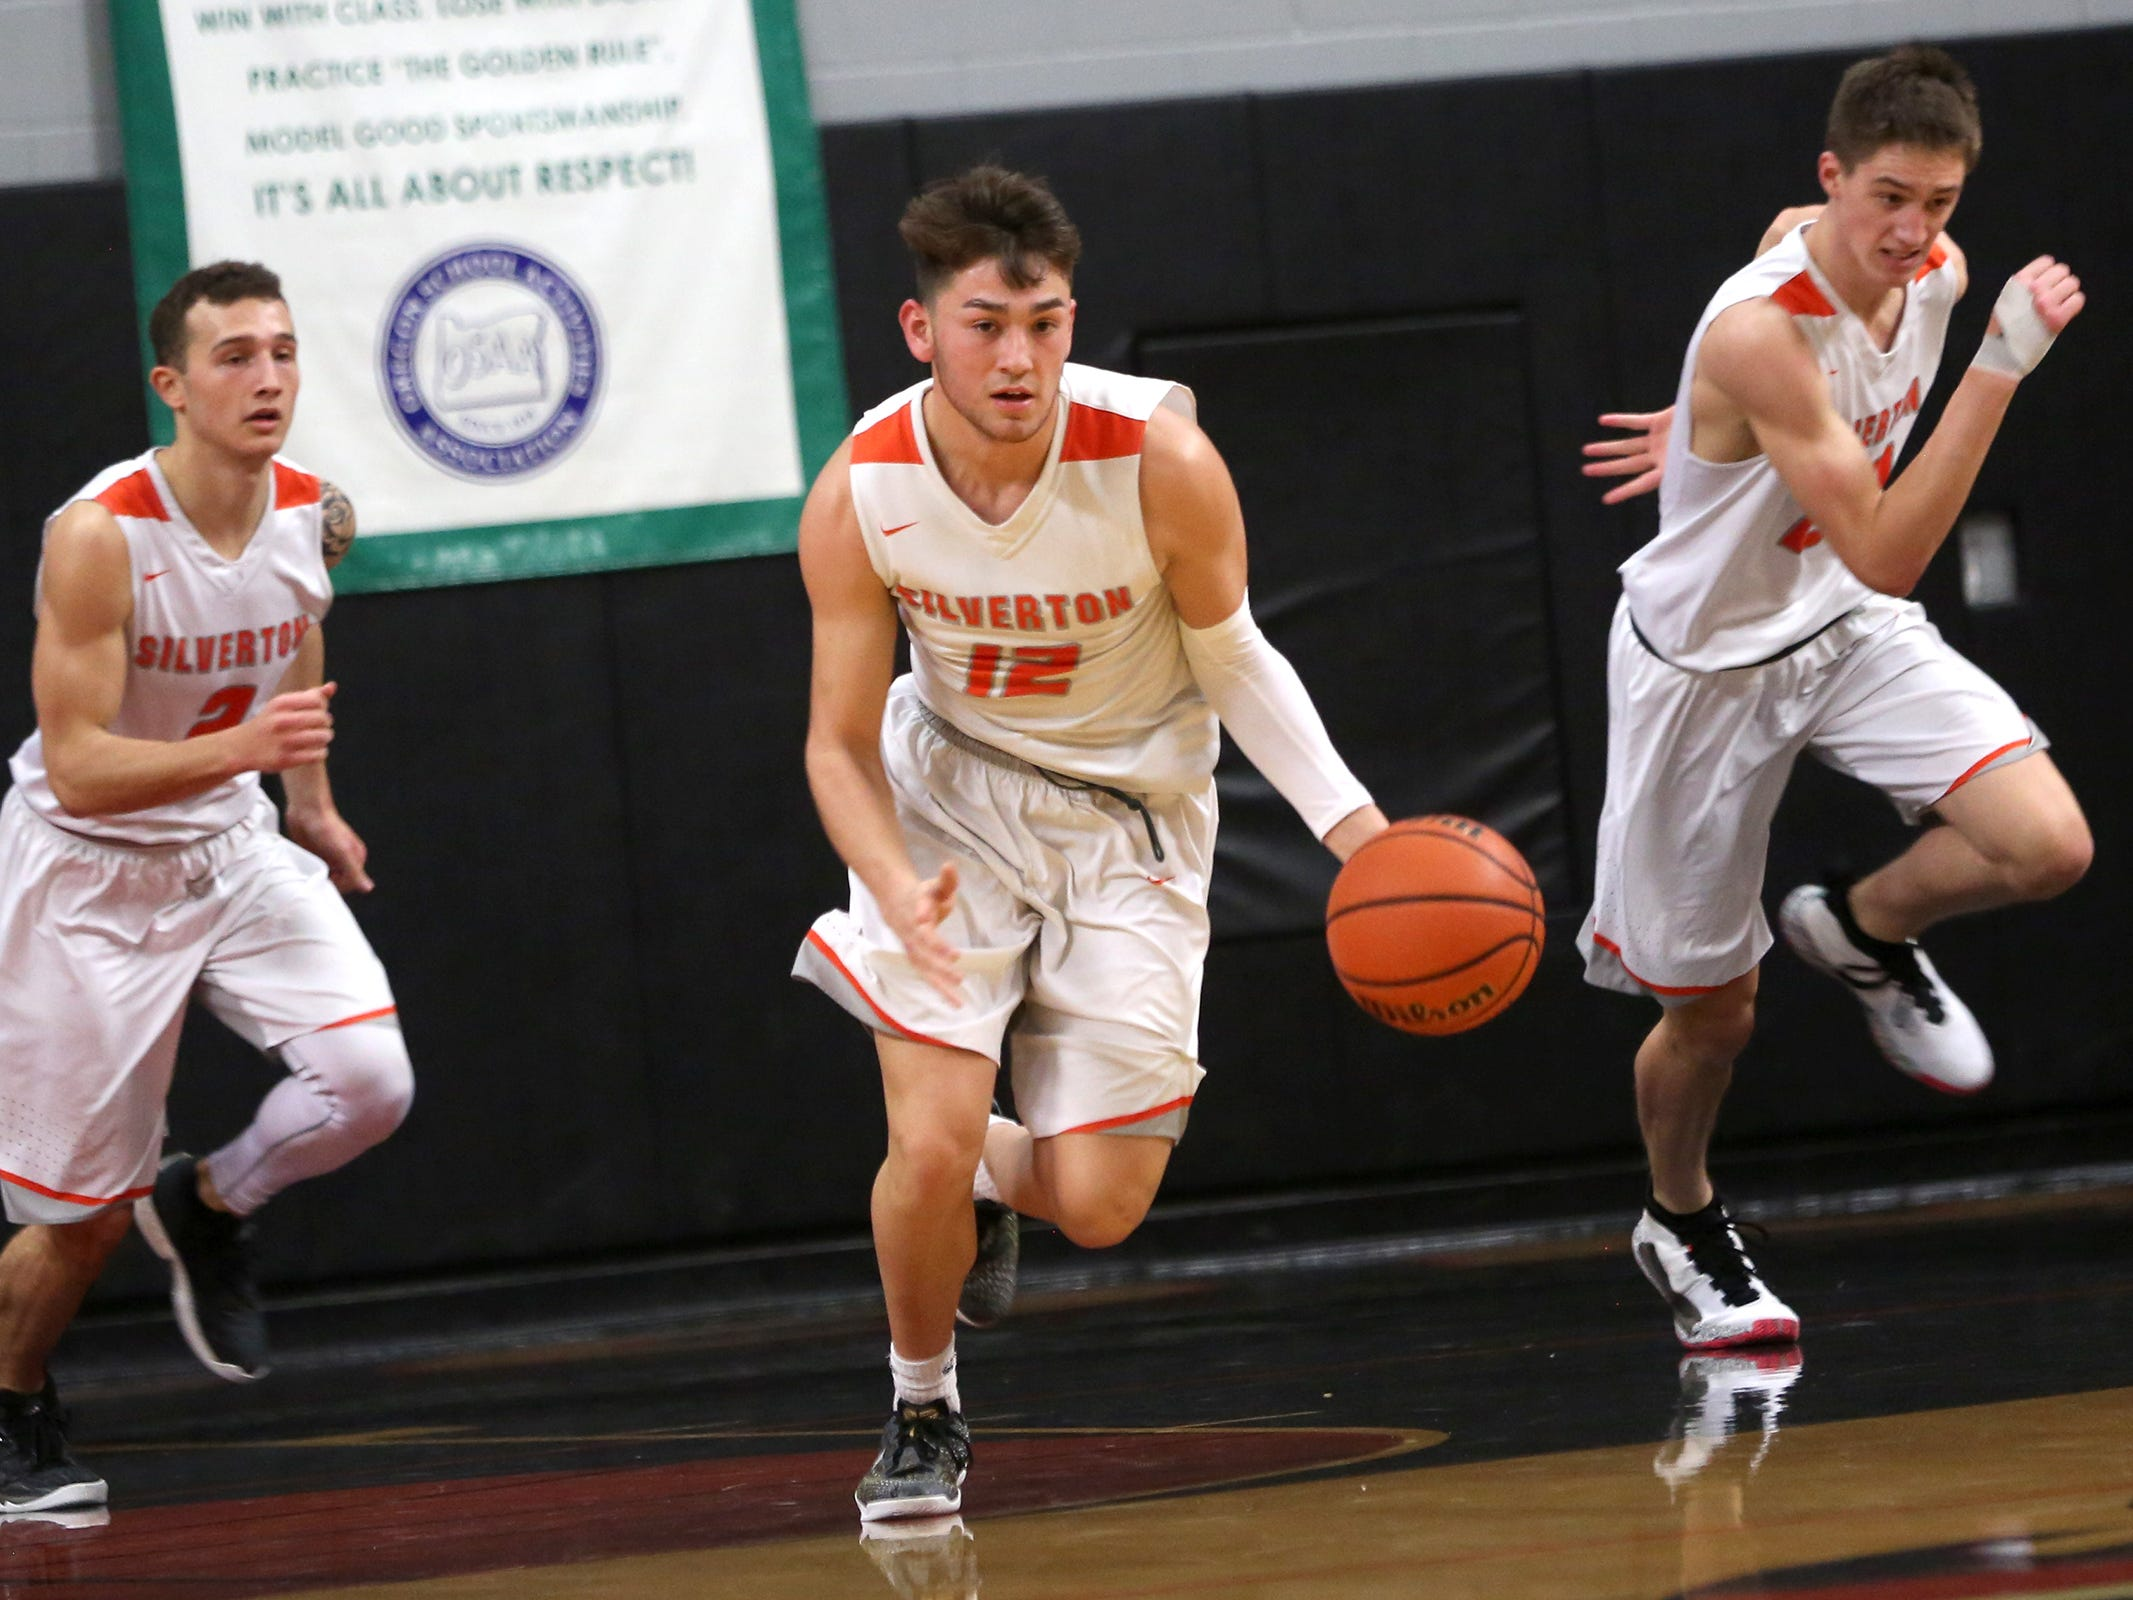 Silverton's David Gonzales (12) makes his way across the court during the Silverton vs. Springfield boys basketball OSAA state playoffs game at Silverton High School in Silverton on Saturday, March 2, 2019.